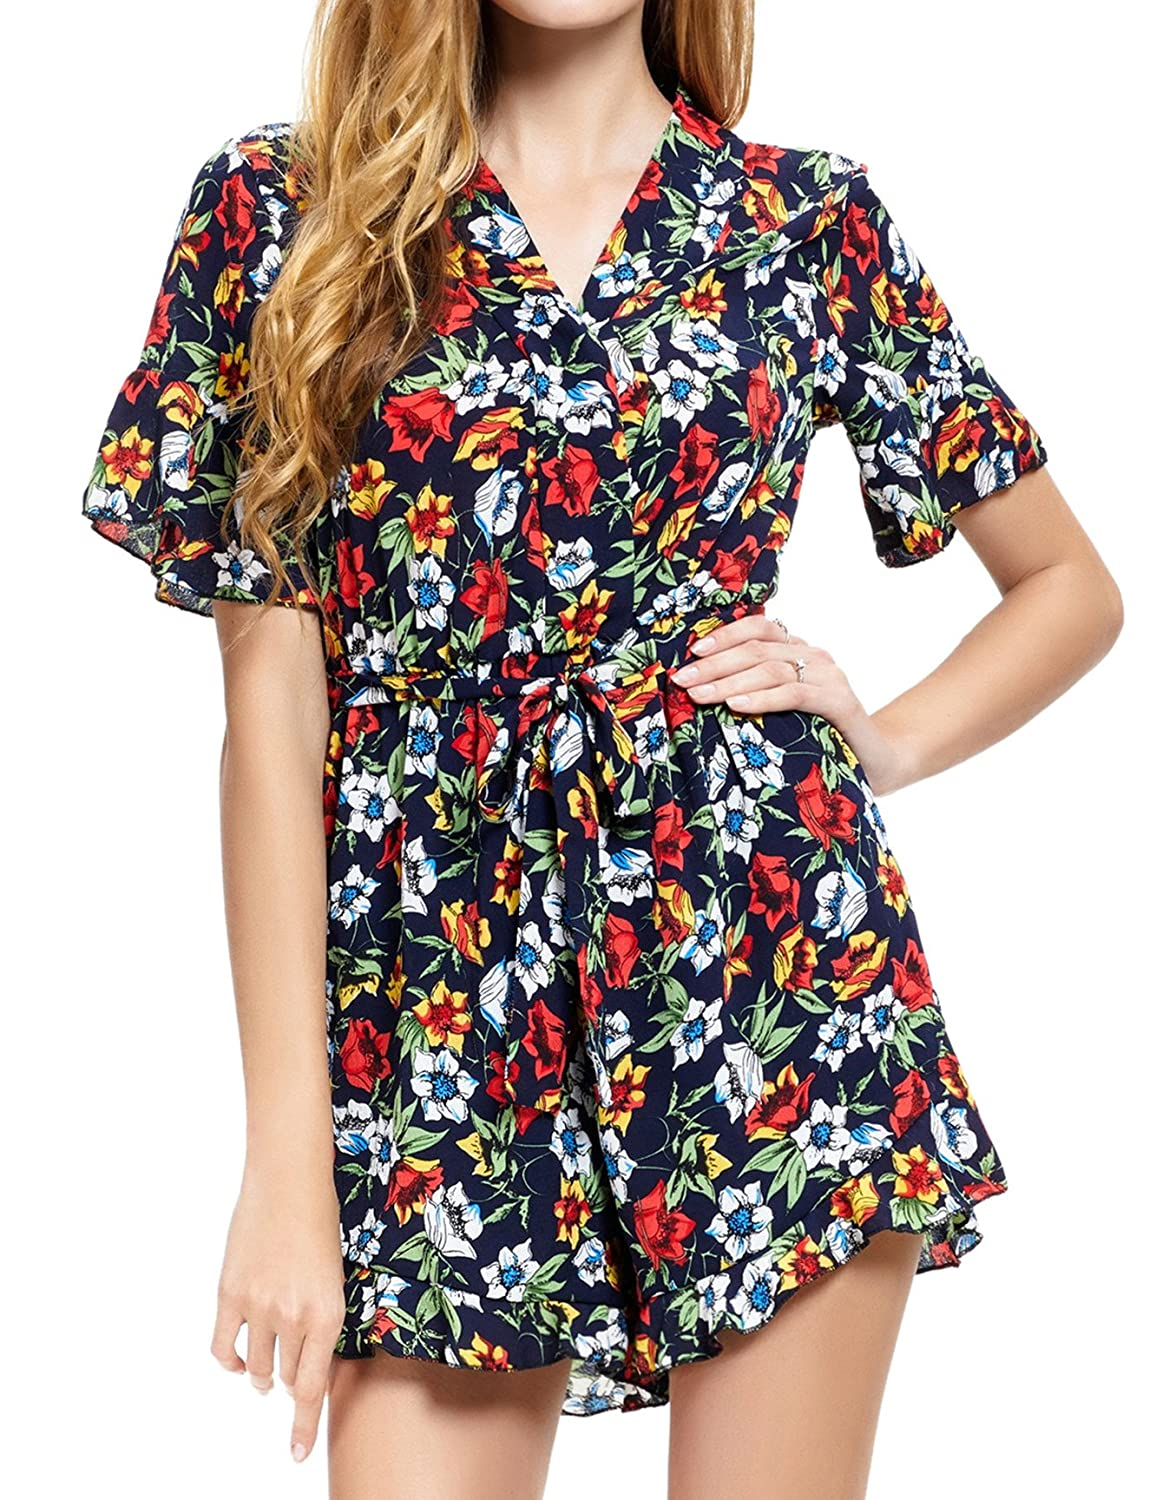 2169bd7f2036 Amazon.com  Abollria Casual Romper Jumpsuit Shorts for Women Short Sleeve V  Neck Floral Print Tie Waist Summer Beachwear  Clothing